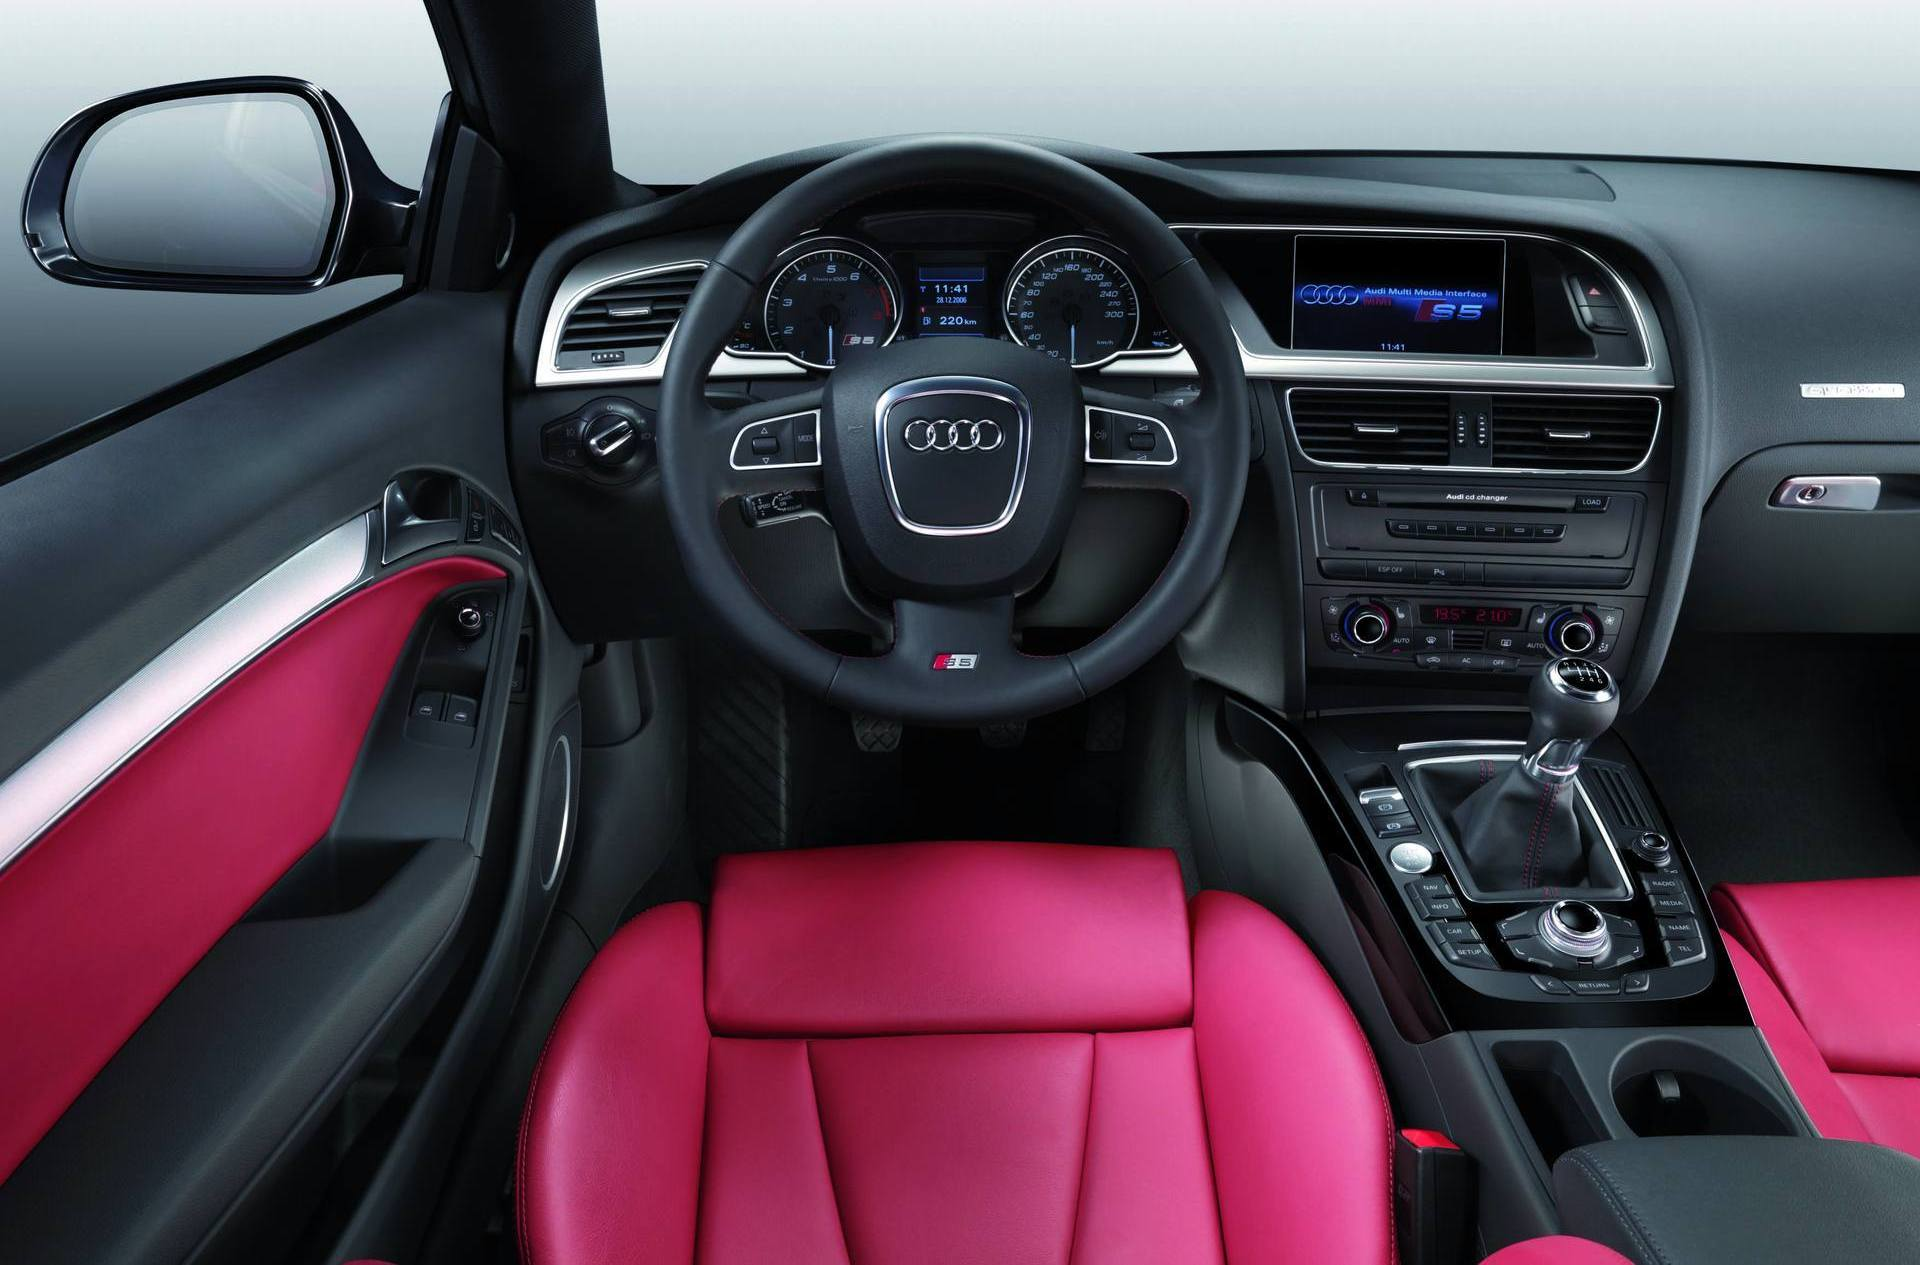 Stunning Interieur Audi S5 Contemporary - Trend Ideas 2018 ...